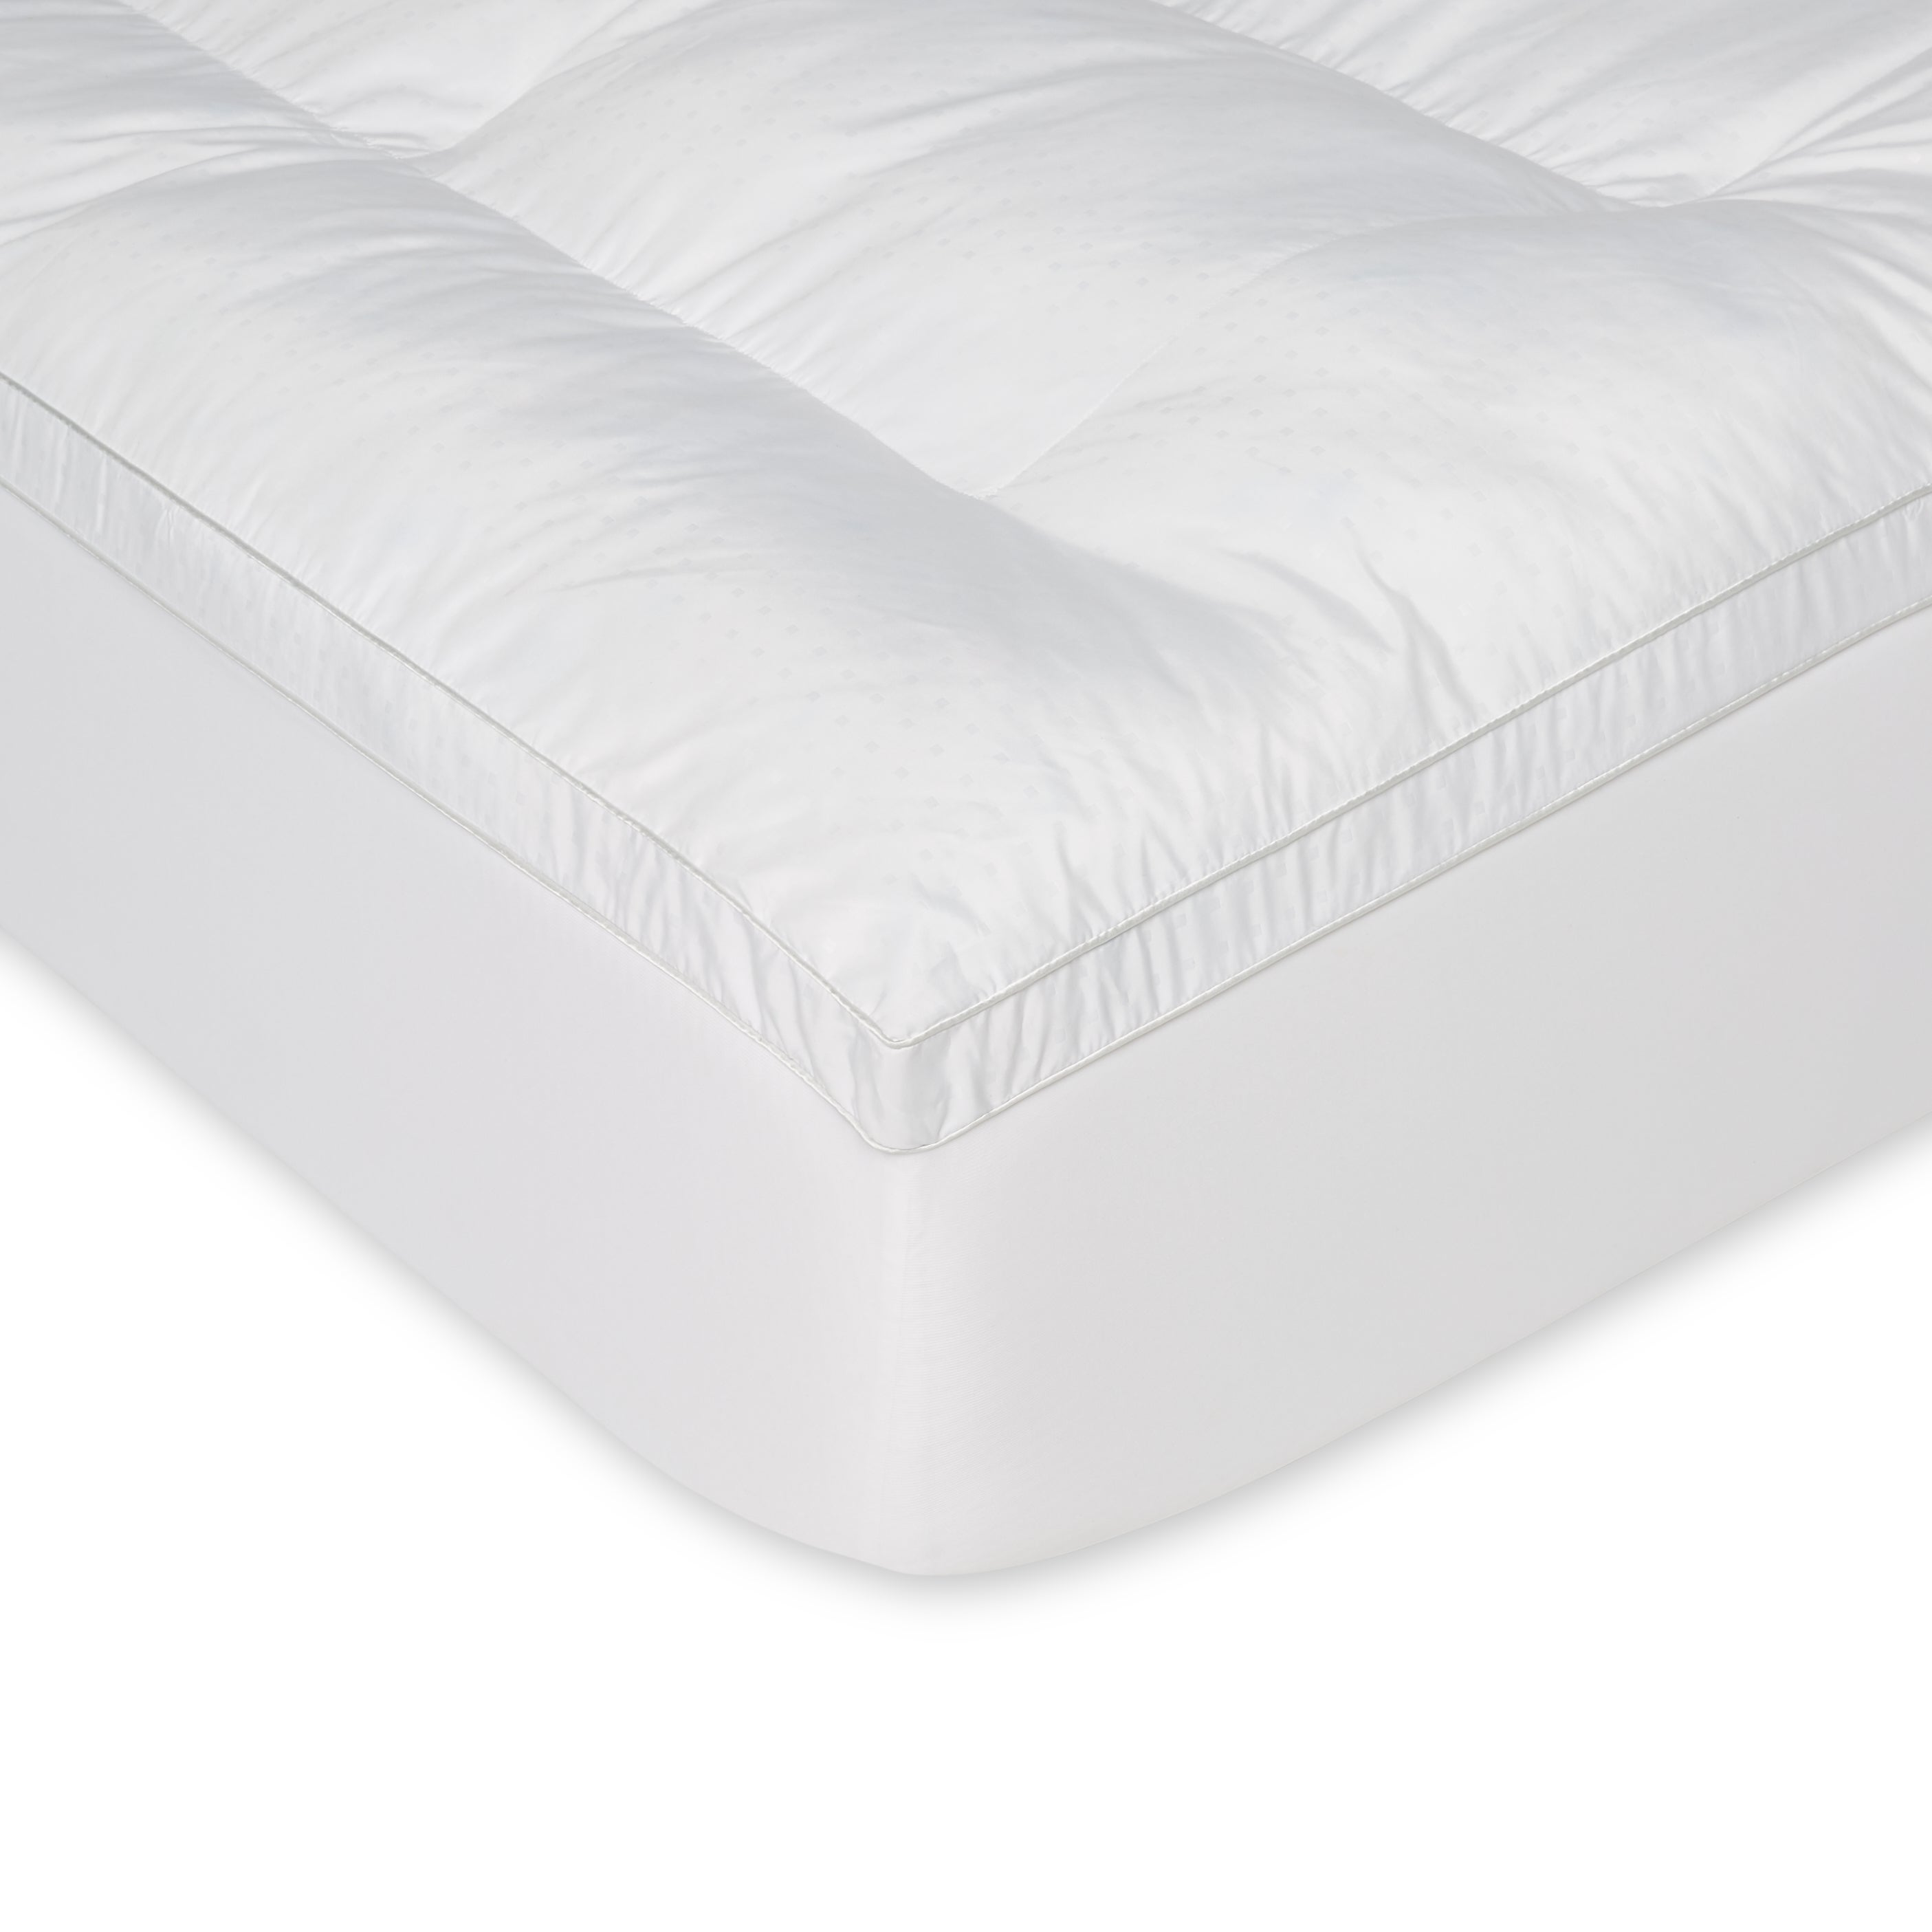 fiber set cover shipping memory bedding gel and slumber topper mattress today overstock solutions filled product free bath foam